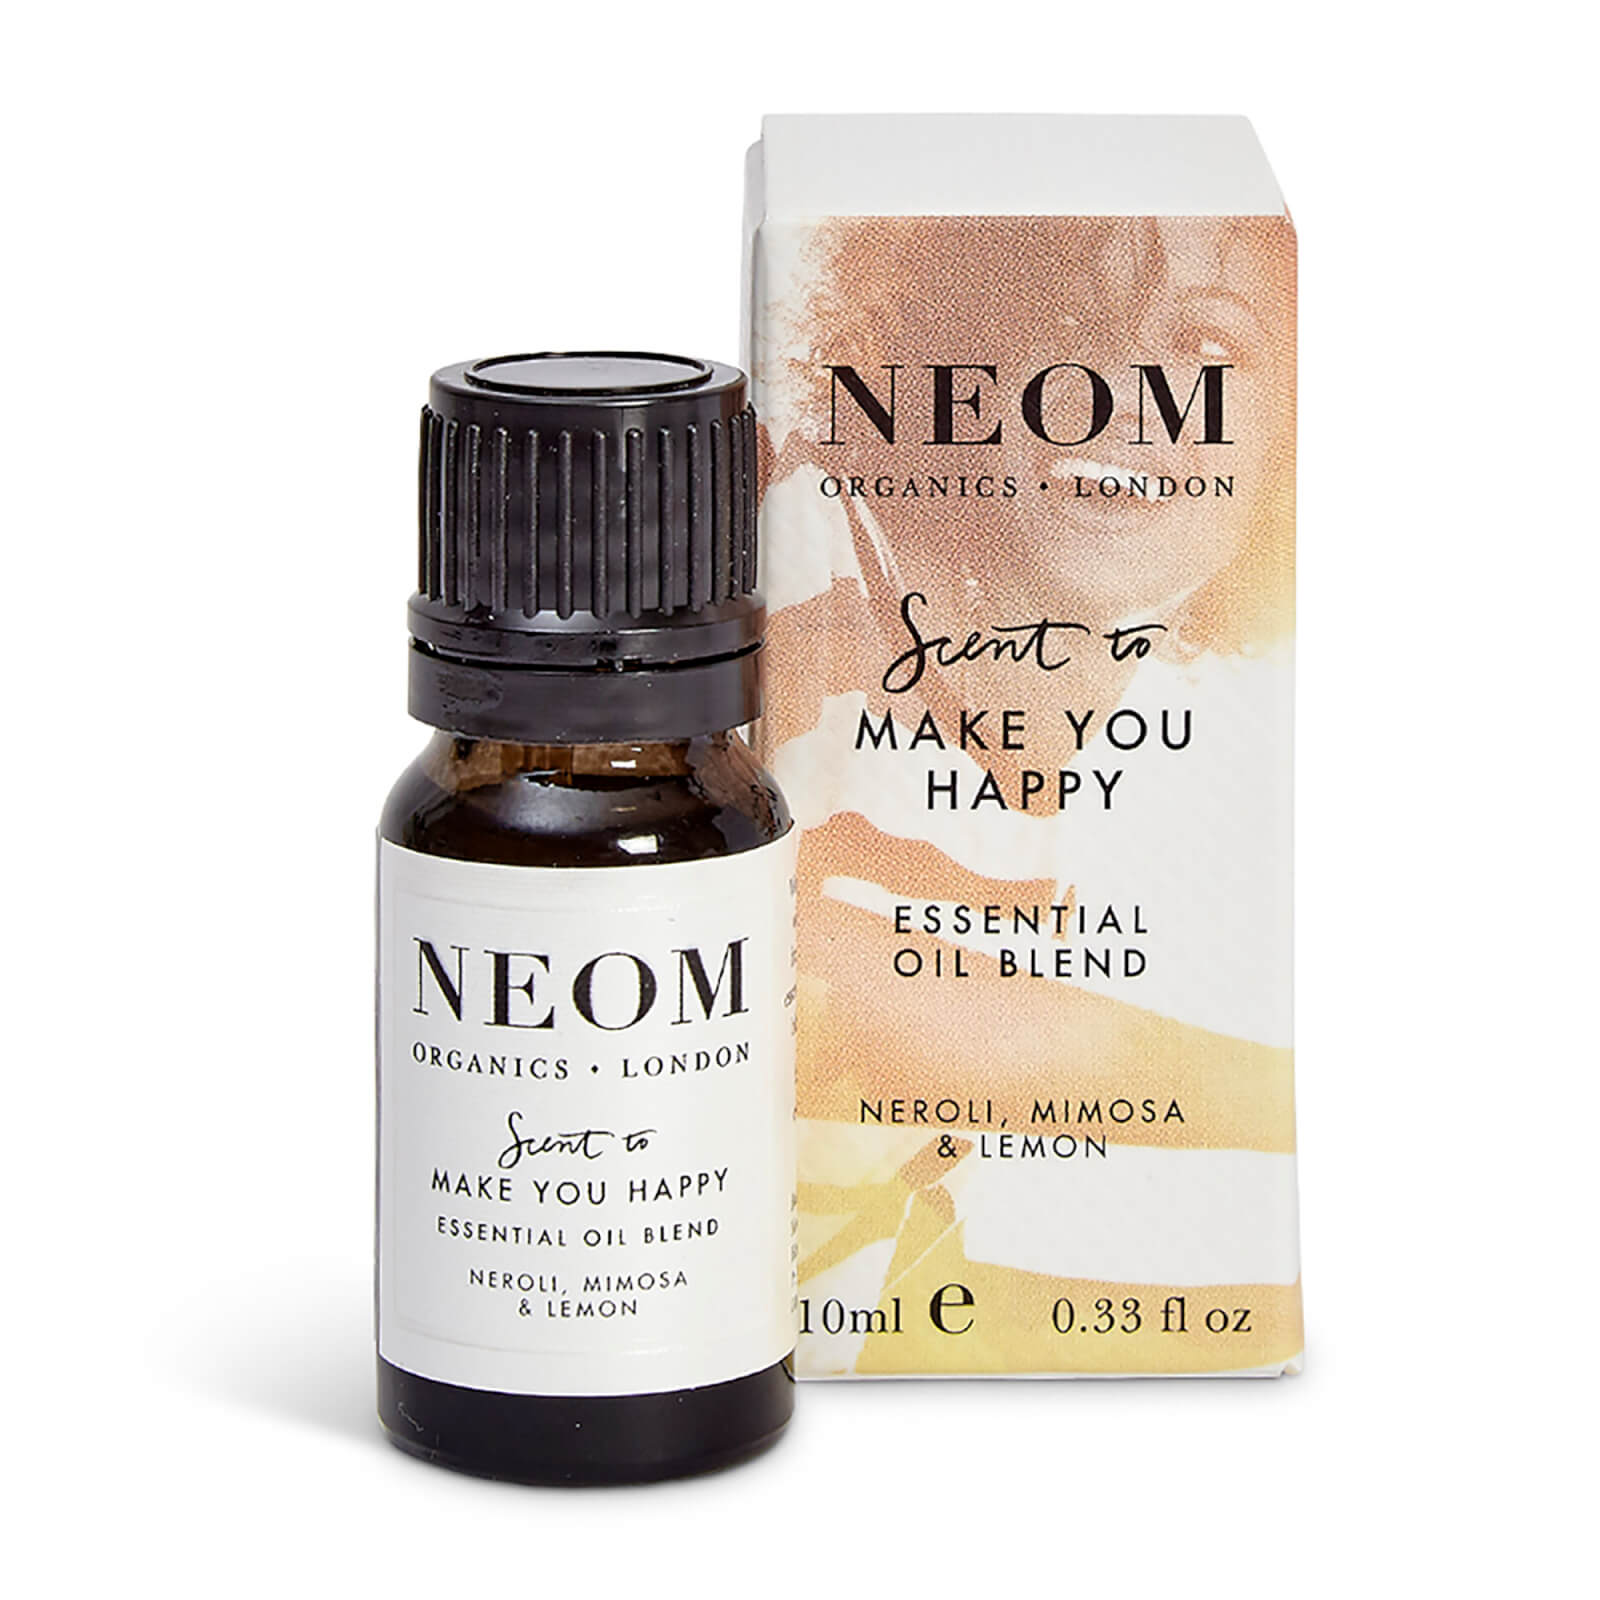 Neom Scent To Make You Happy Essential Oil Blend 10ml Lookfantastic